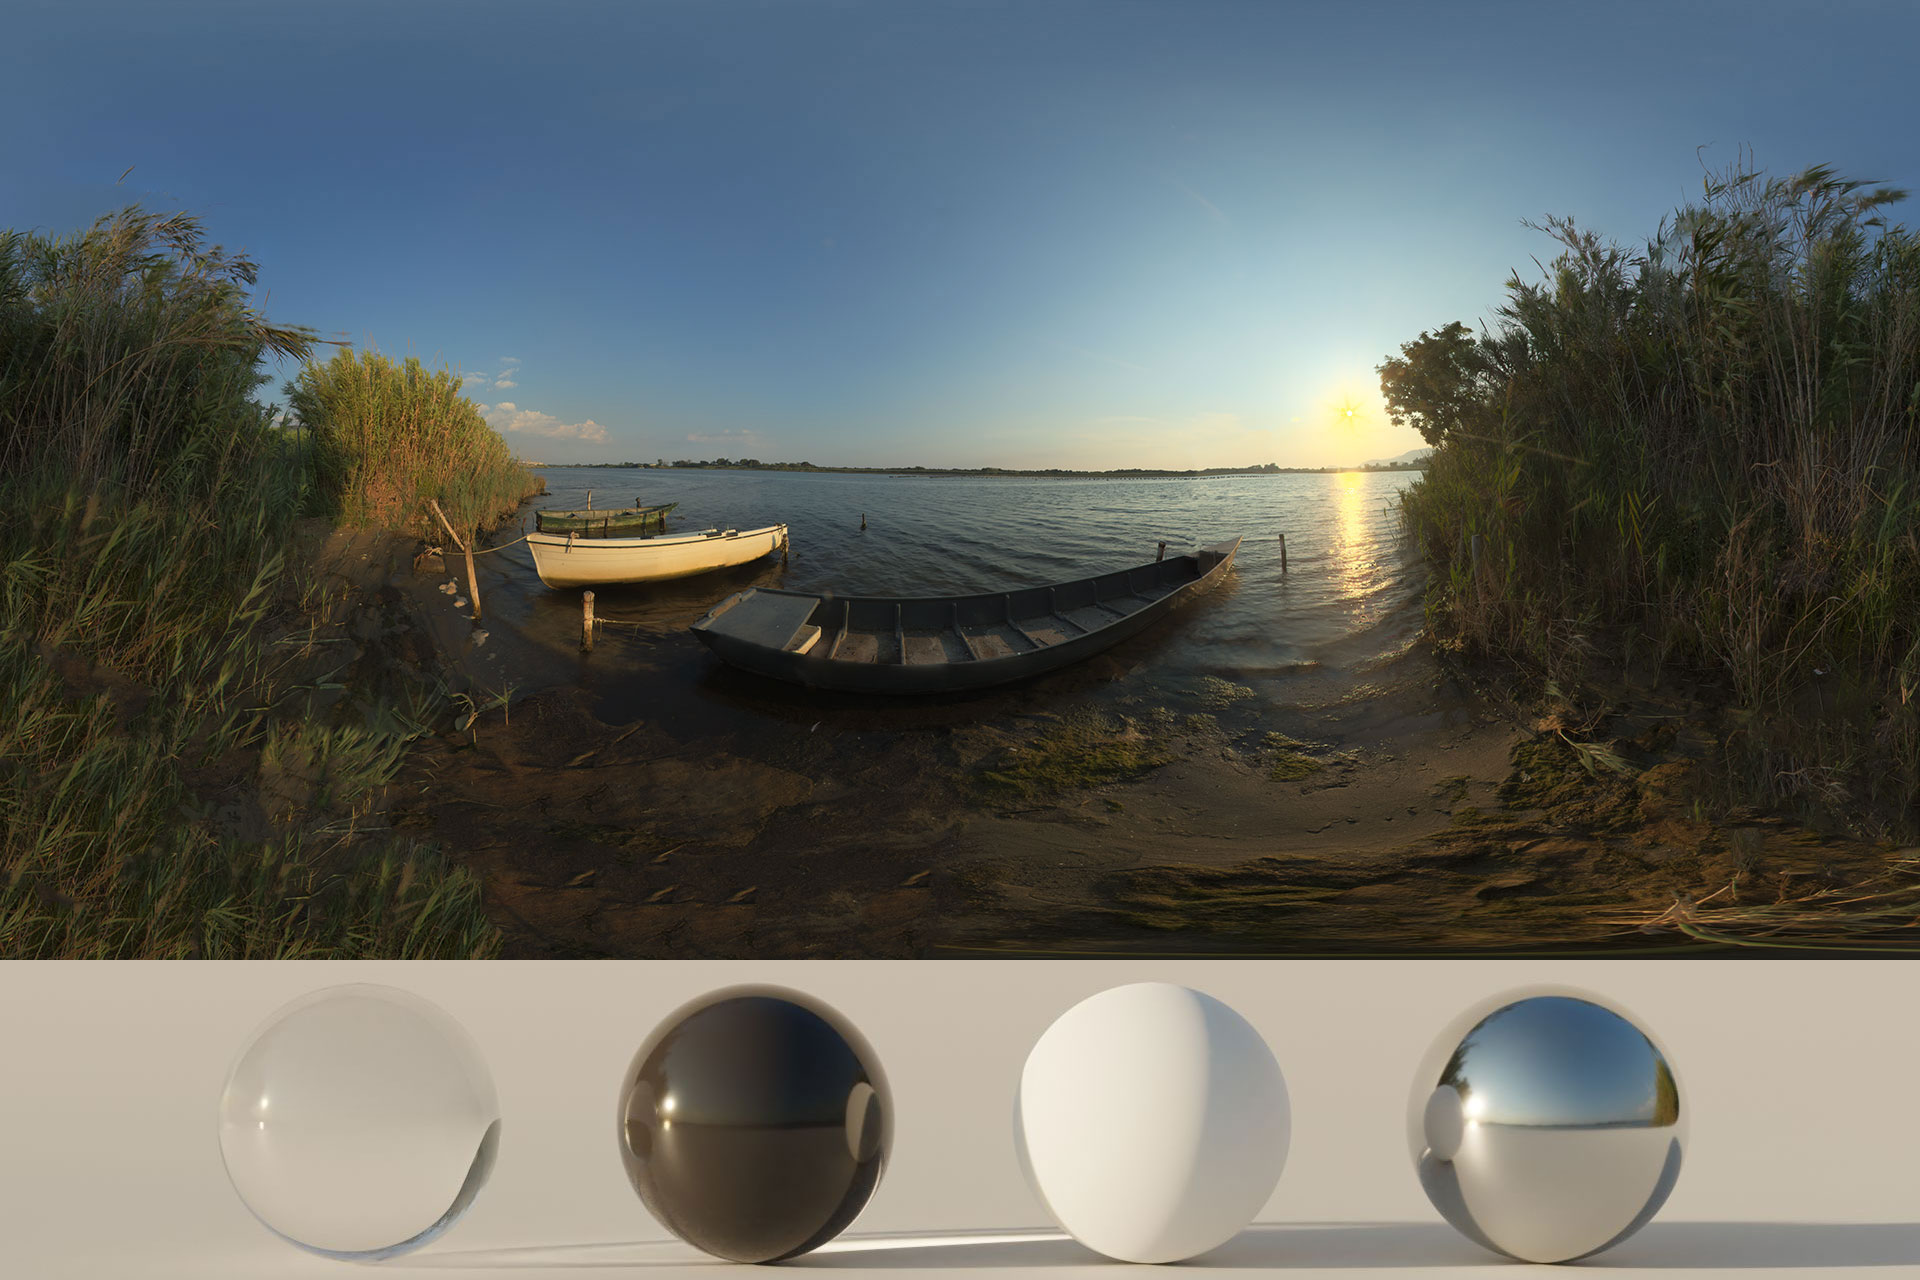 Download an Awesome HDRi Lake And Boats